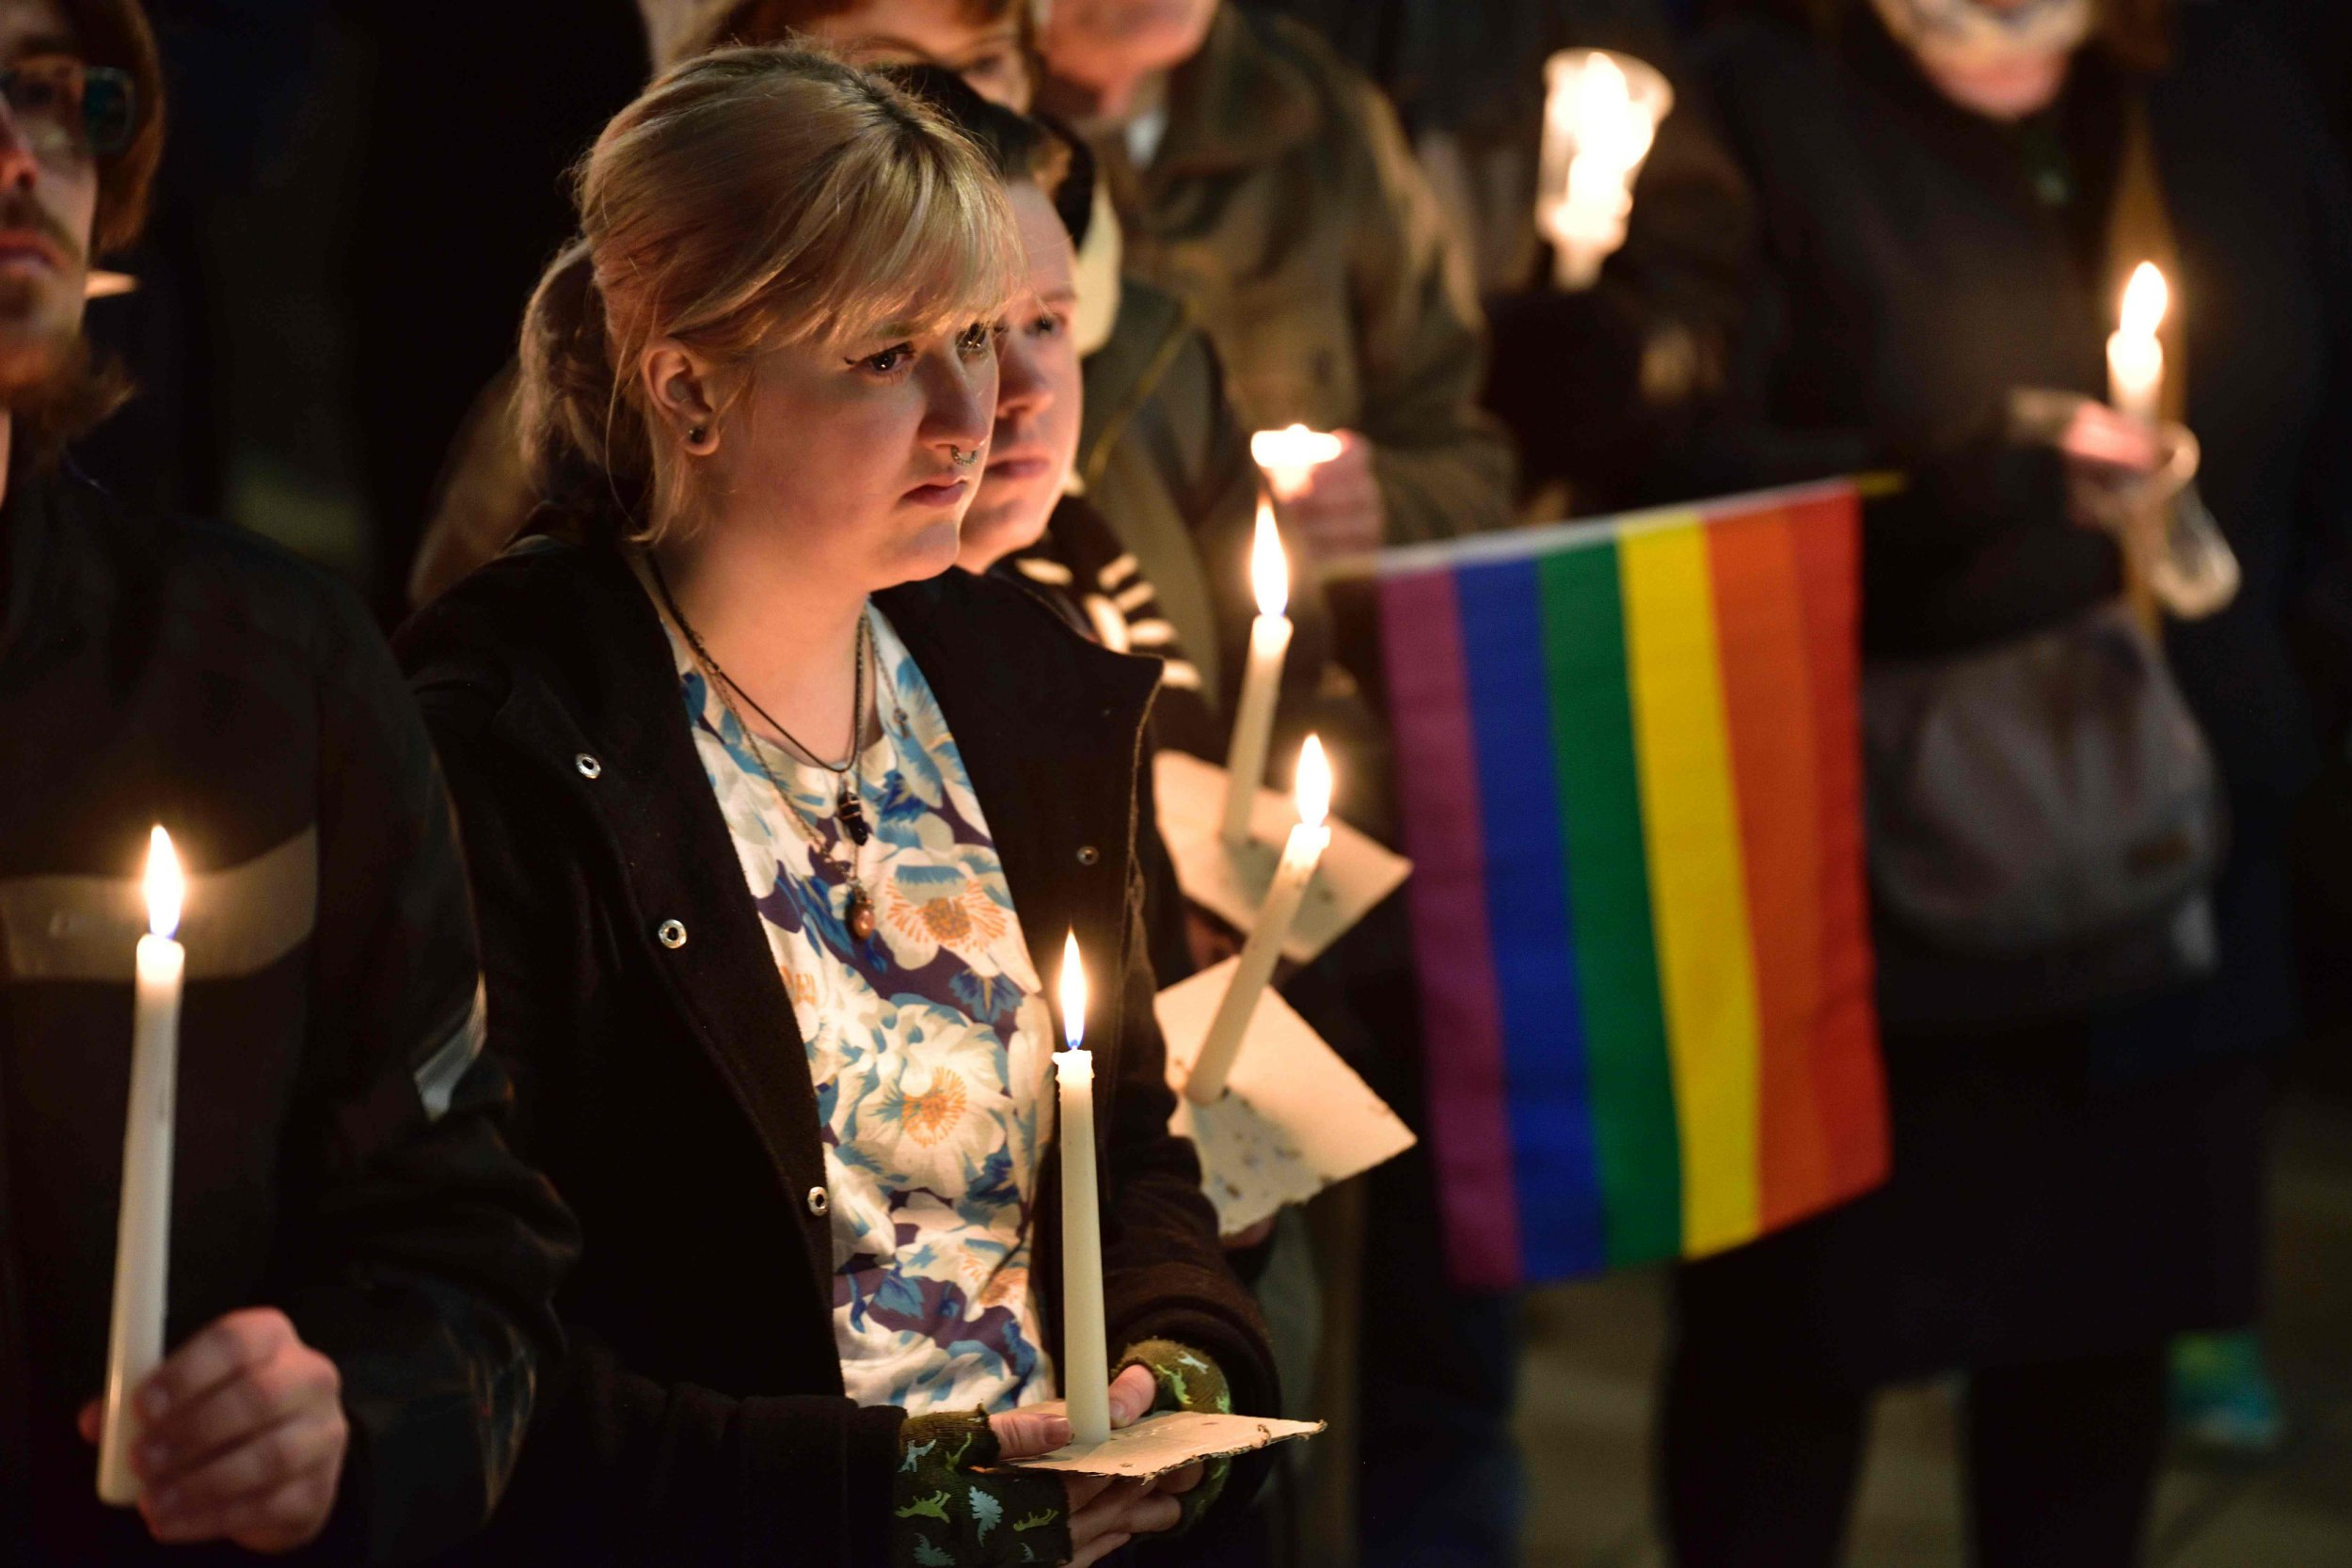 Participants hold candles during a vigil at Frank Kits Park in Wellington on June 13, 2016, in remembrance of victims after a gunman opened fire in a gay nightclub in Orlando, Florida in the worst mass shooting in US history...US anti-terror strategy came under fresh scrutiny after a gunman previously cleared of jihadist ties launched a hate-fueled rampage in a Florida gay club that left 50 dead. / AFP PHOTO / Marty MelvilleMARTY MELVILLE/AFP/Getty Images